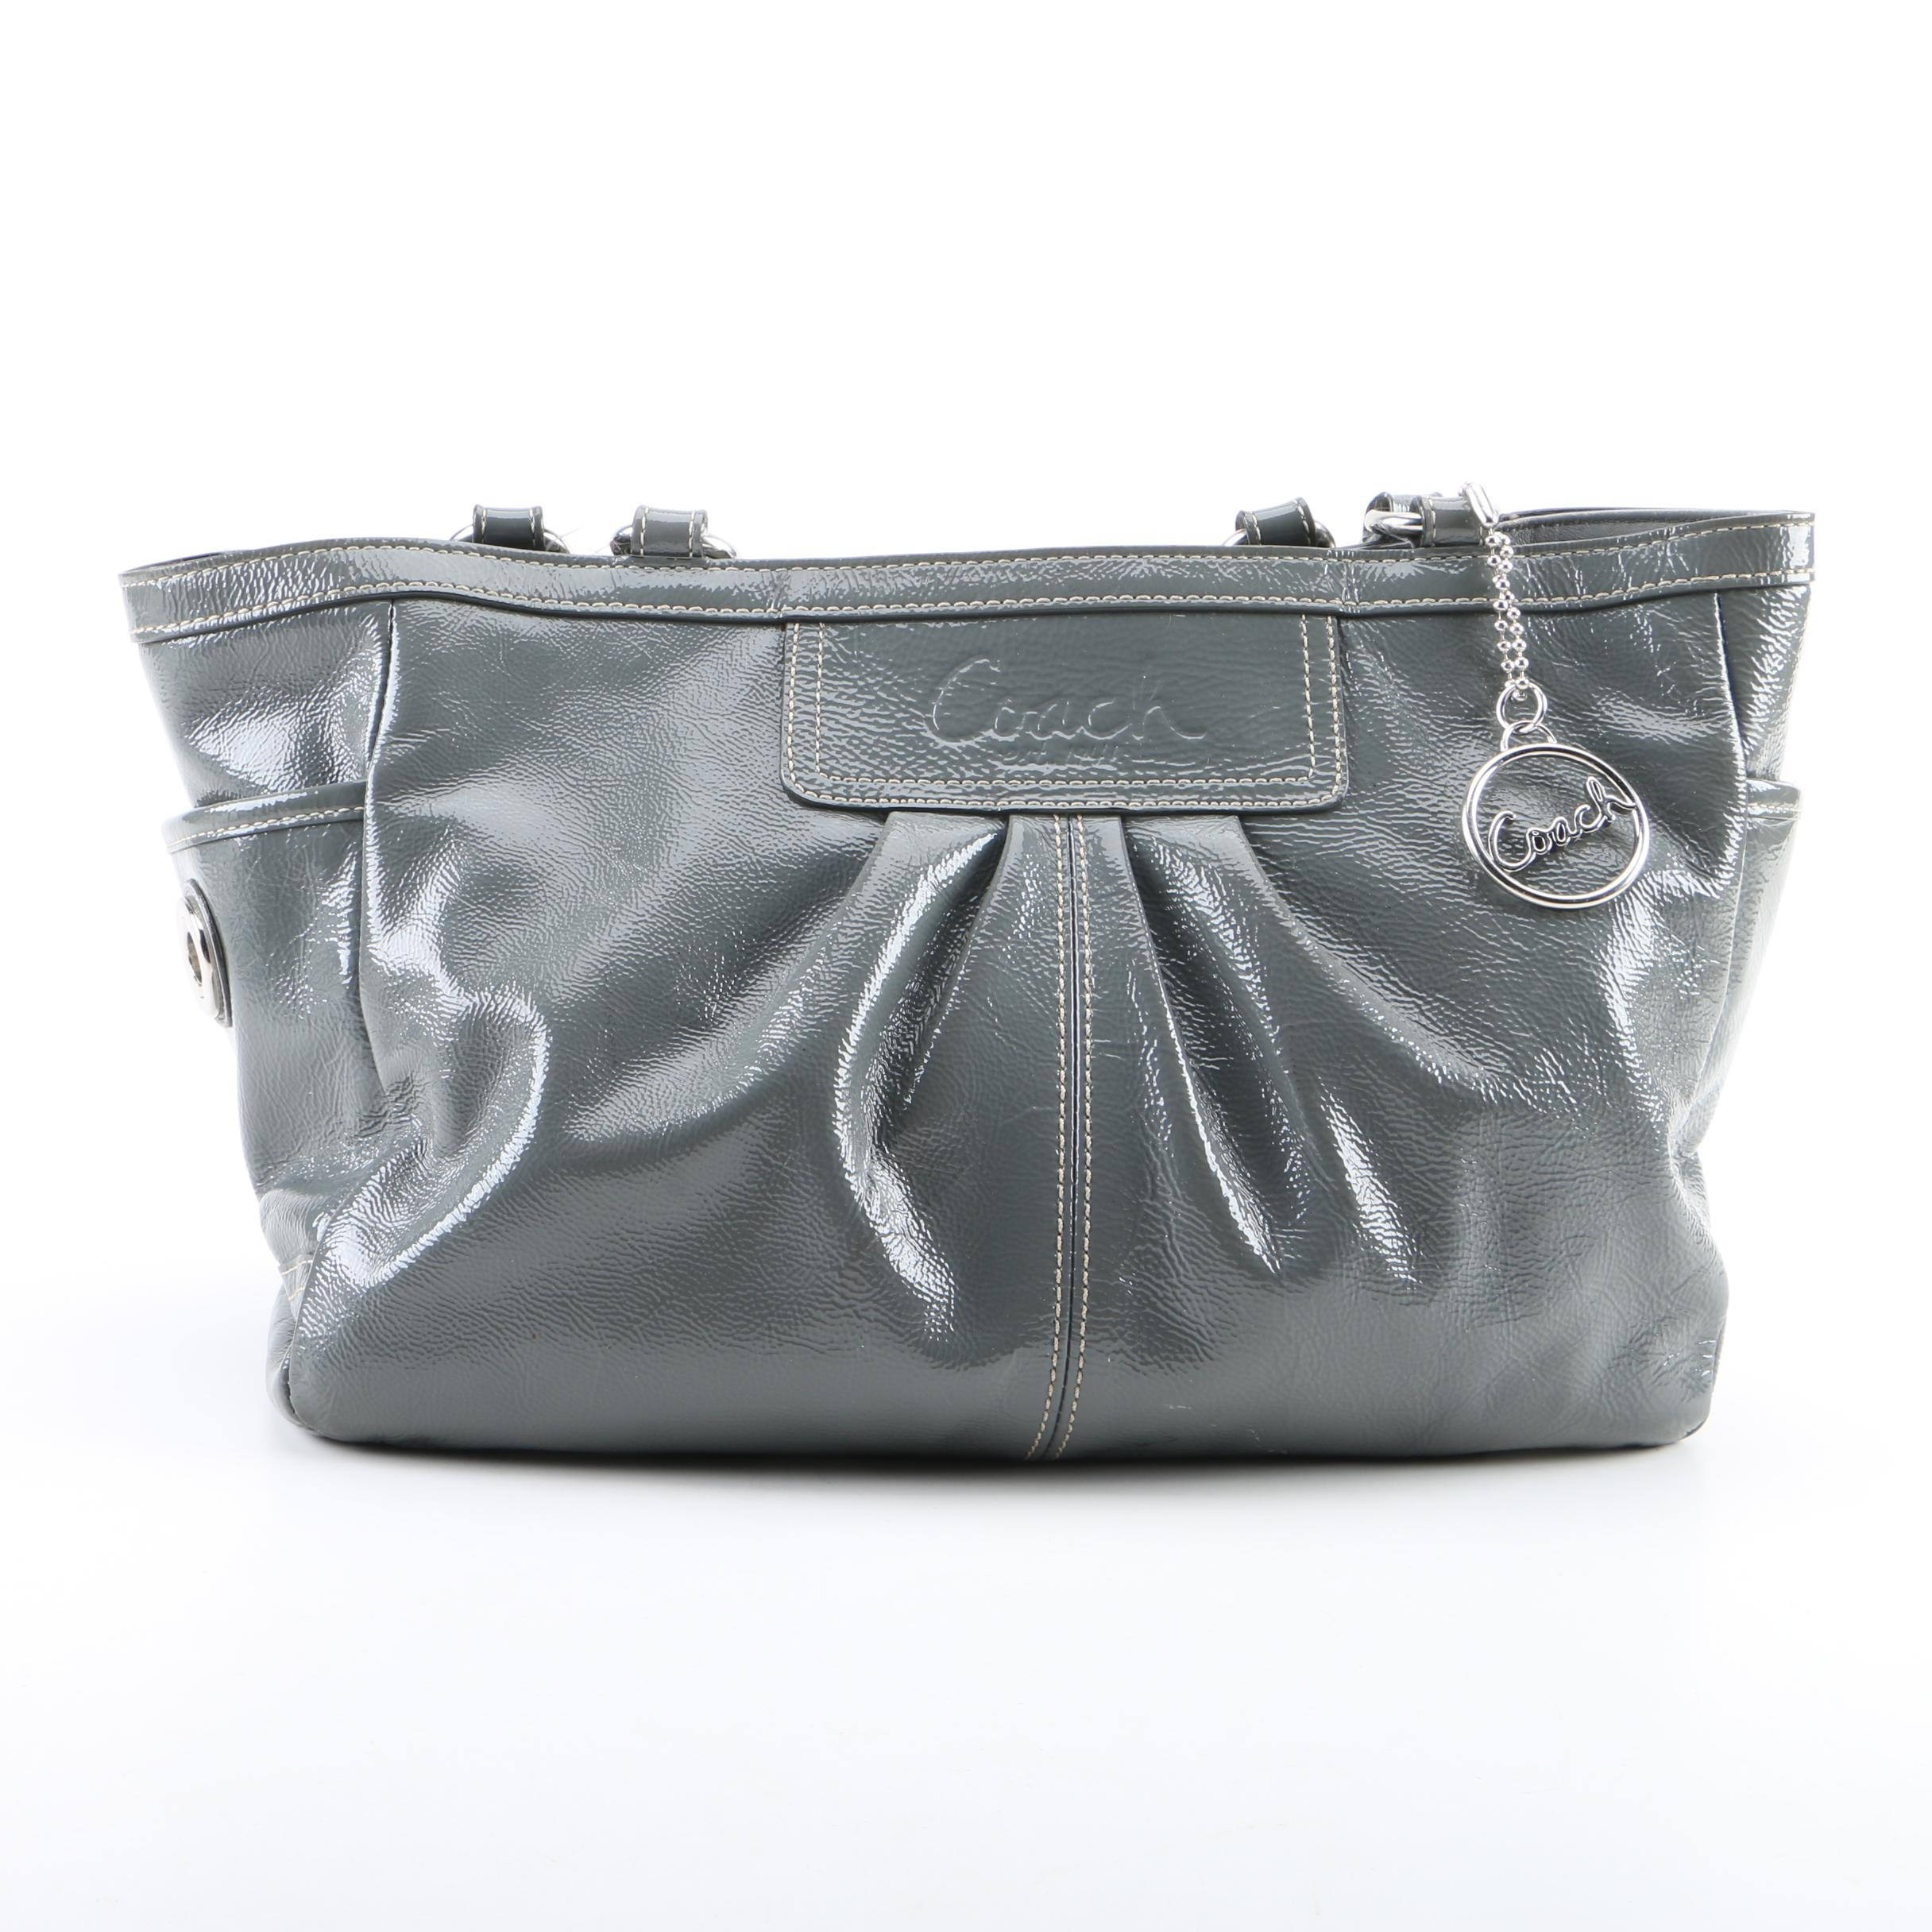 Coach Pleated East West Gallery Grey Patent Leather Tote